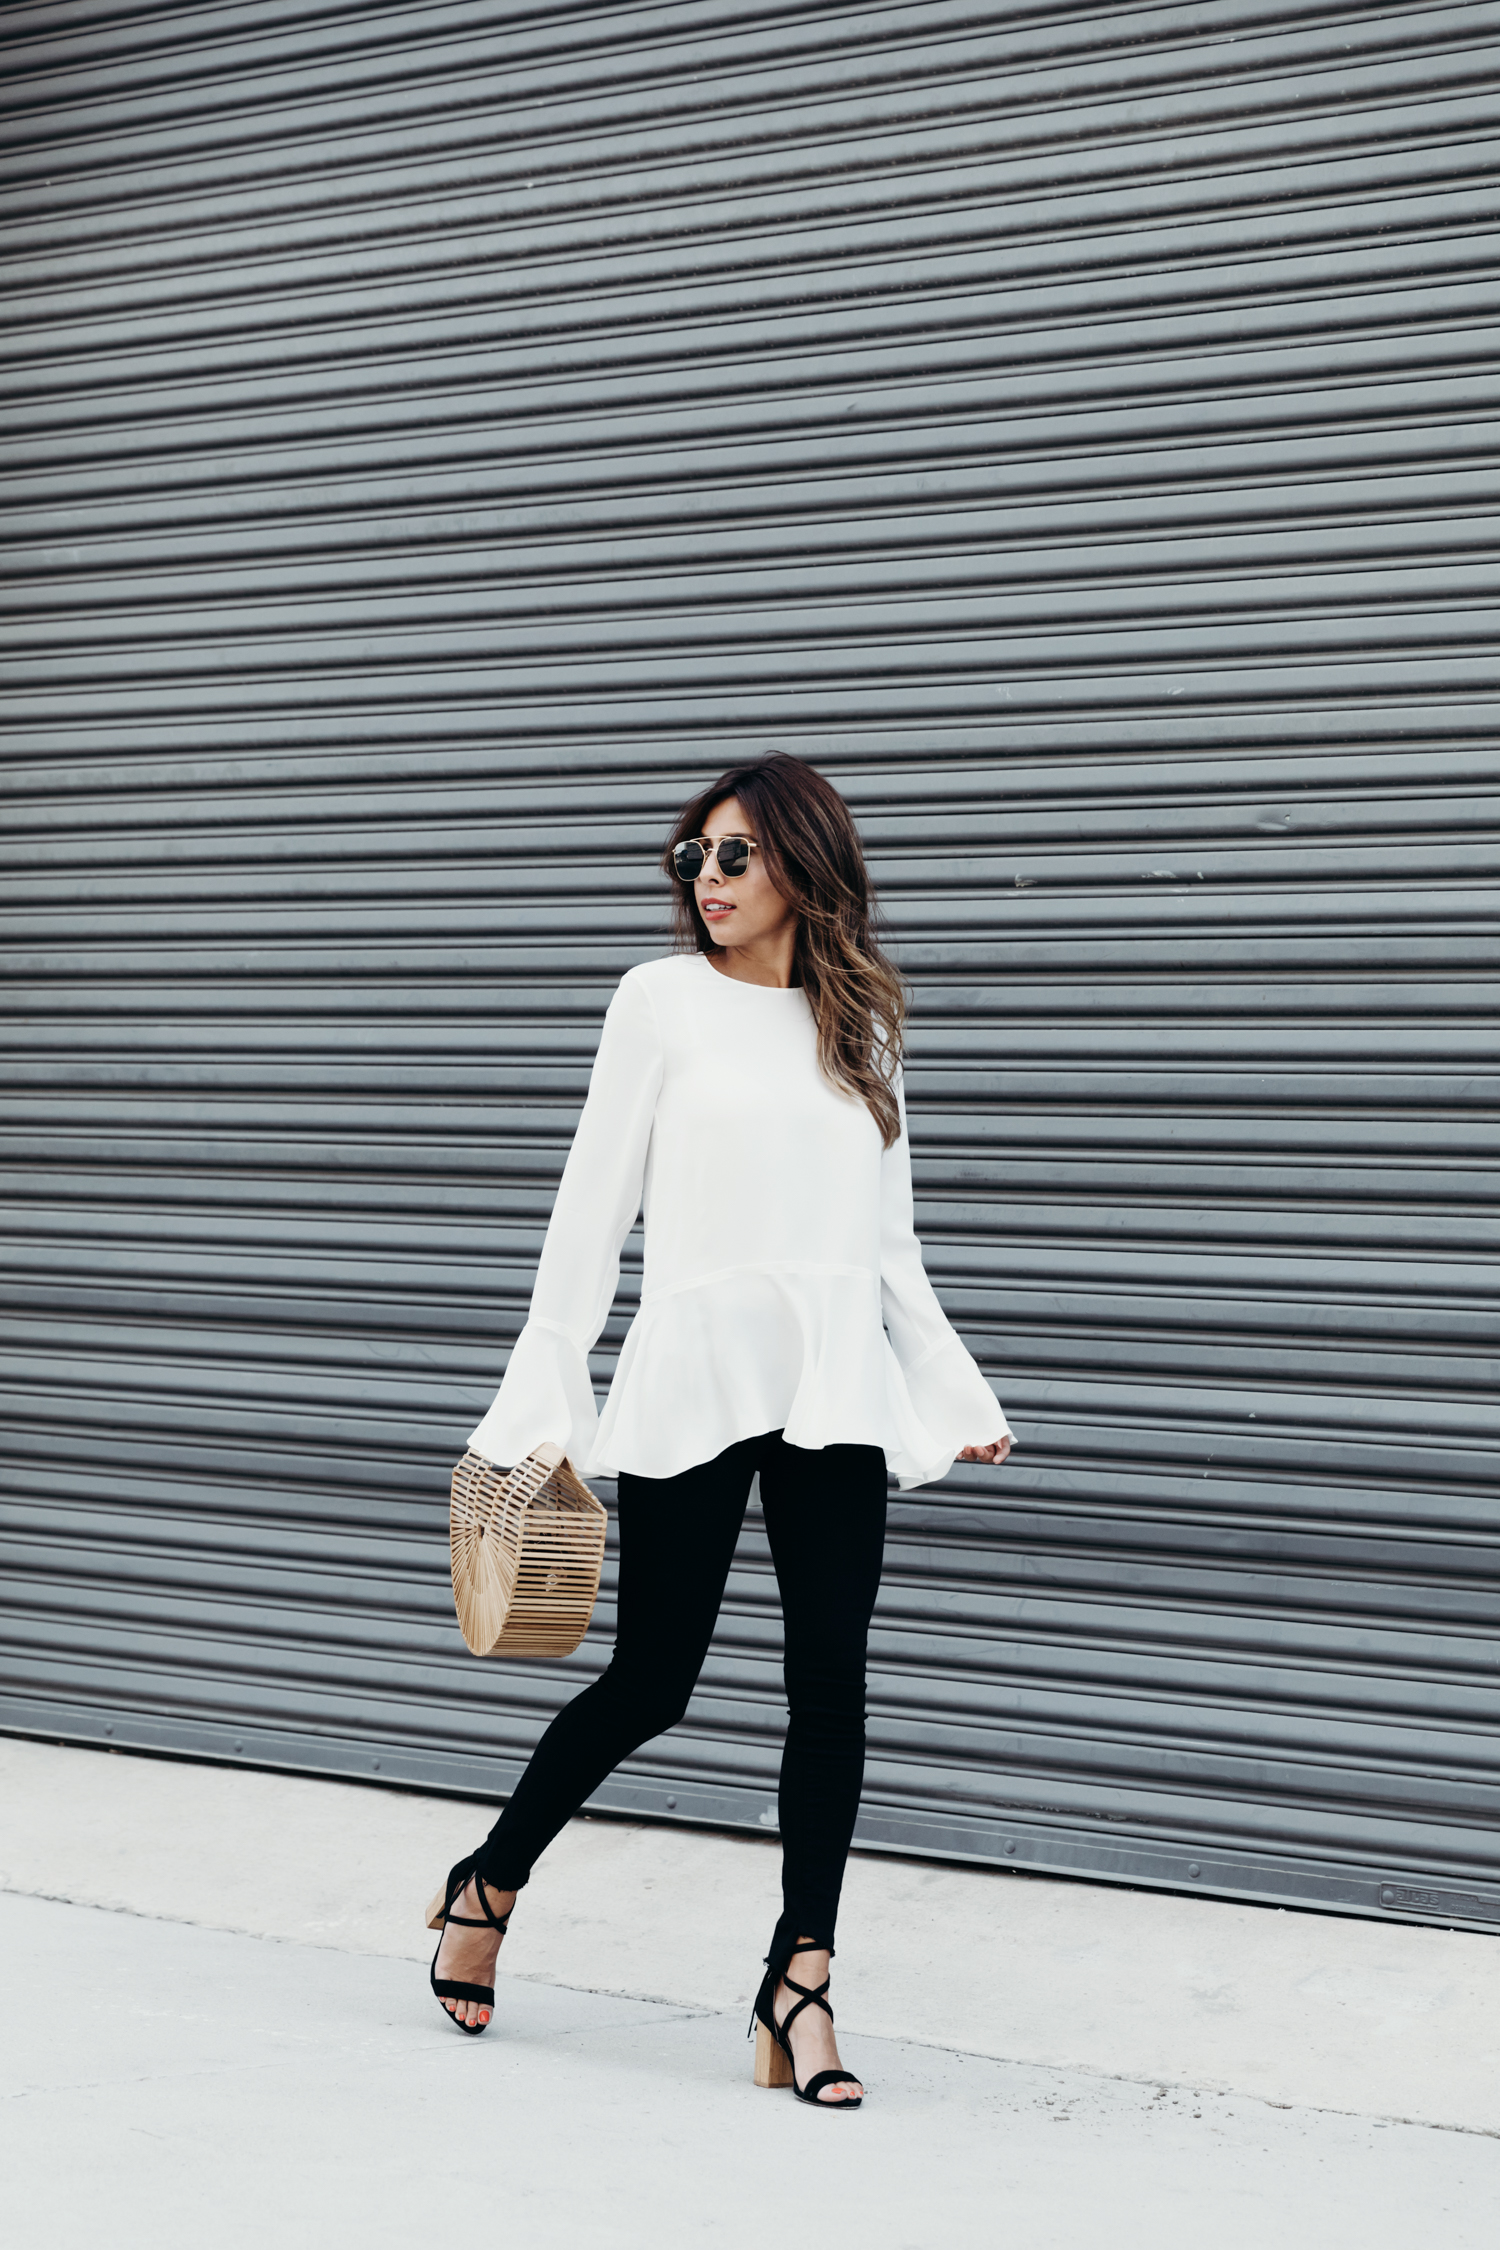 Nordstrom Anniversary Sale, Theory Blouse, Everyday Pursuits Style